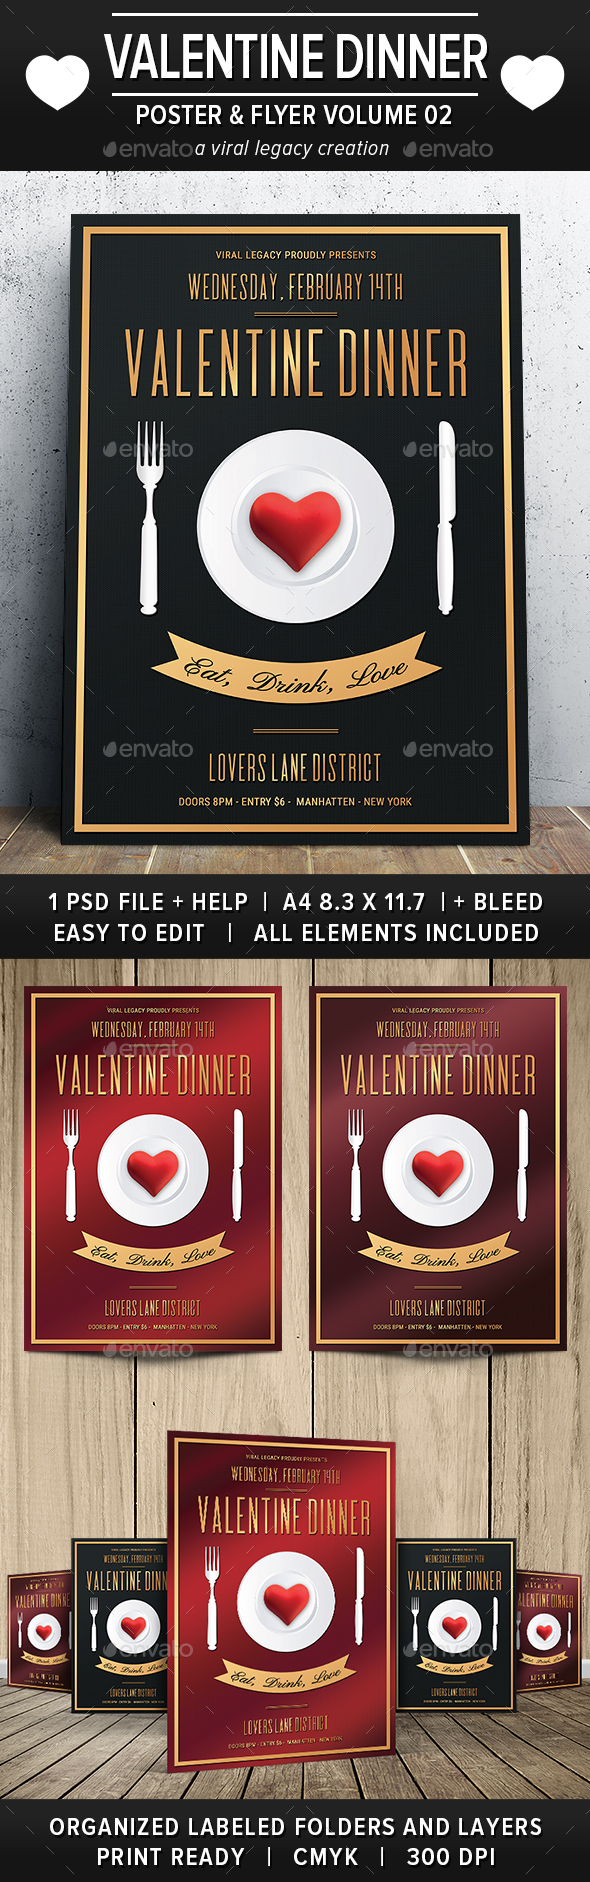 Valentine Dinner Poster / Flyer V02 - Flyers Print Templates